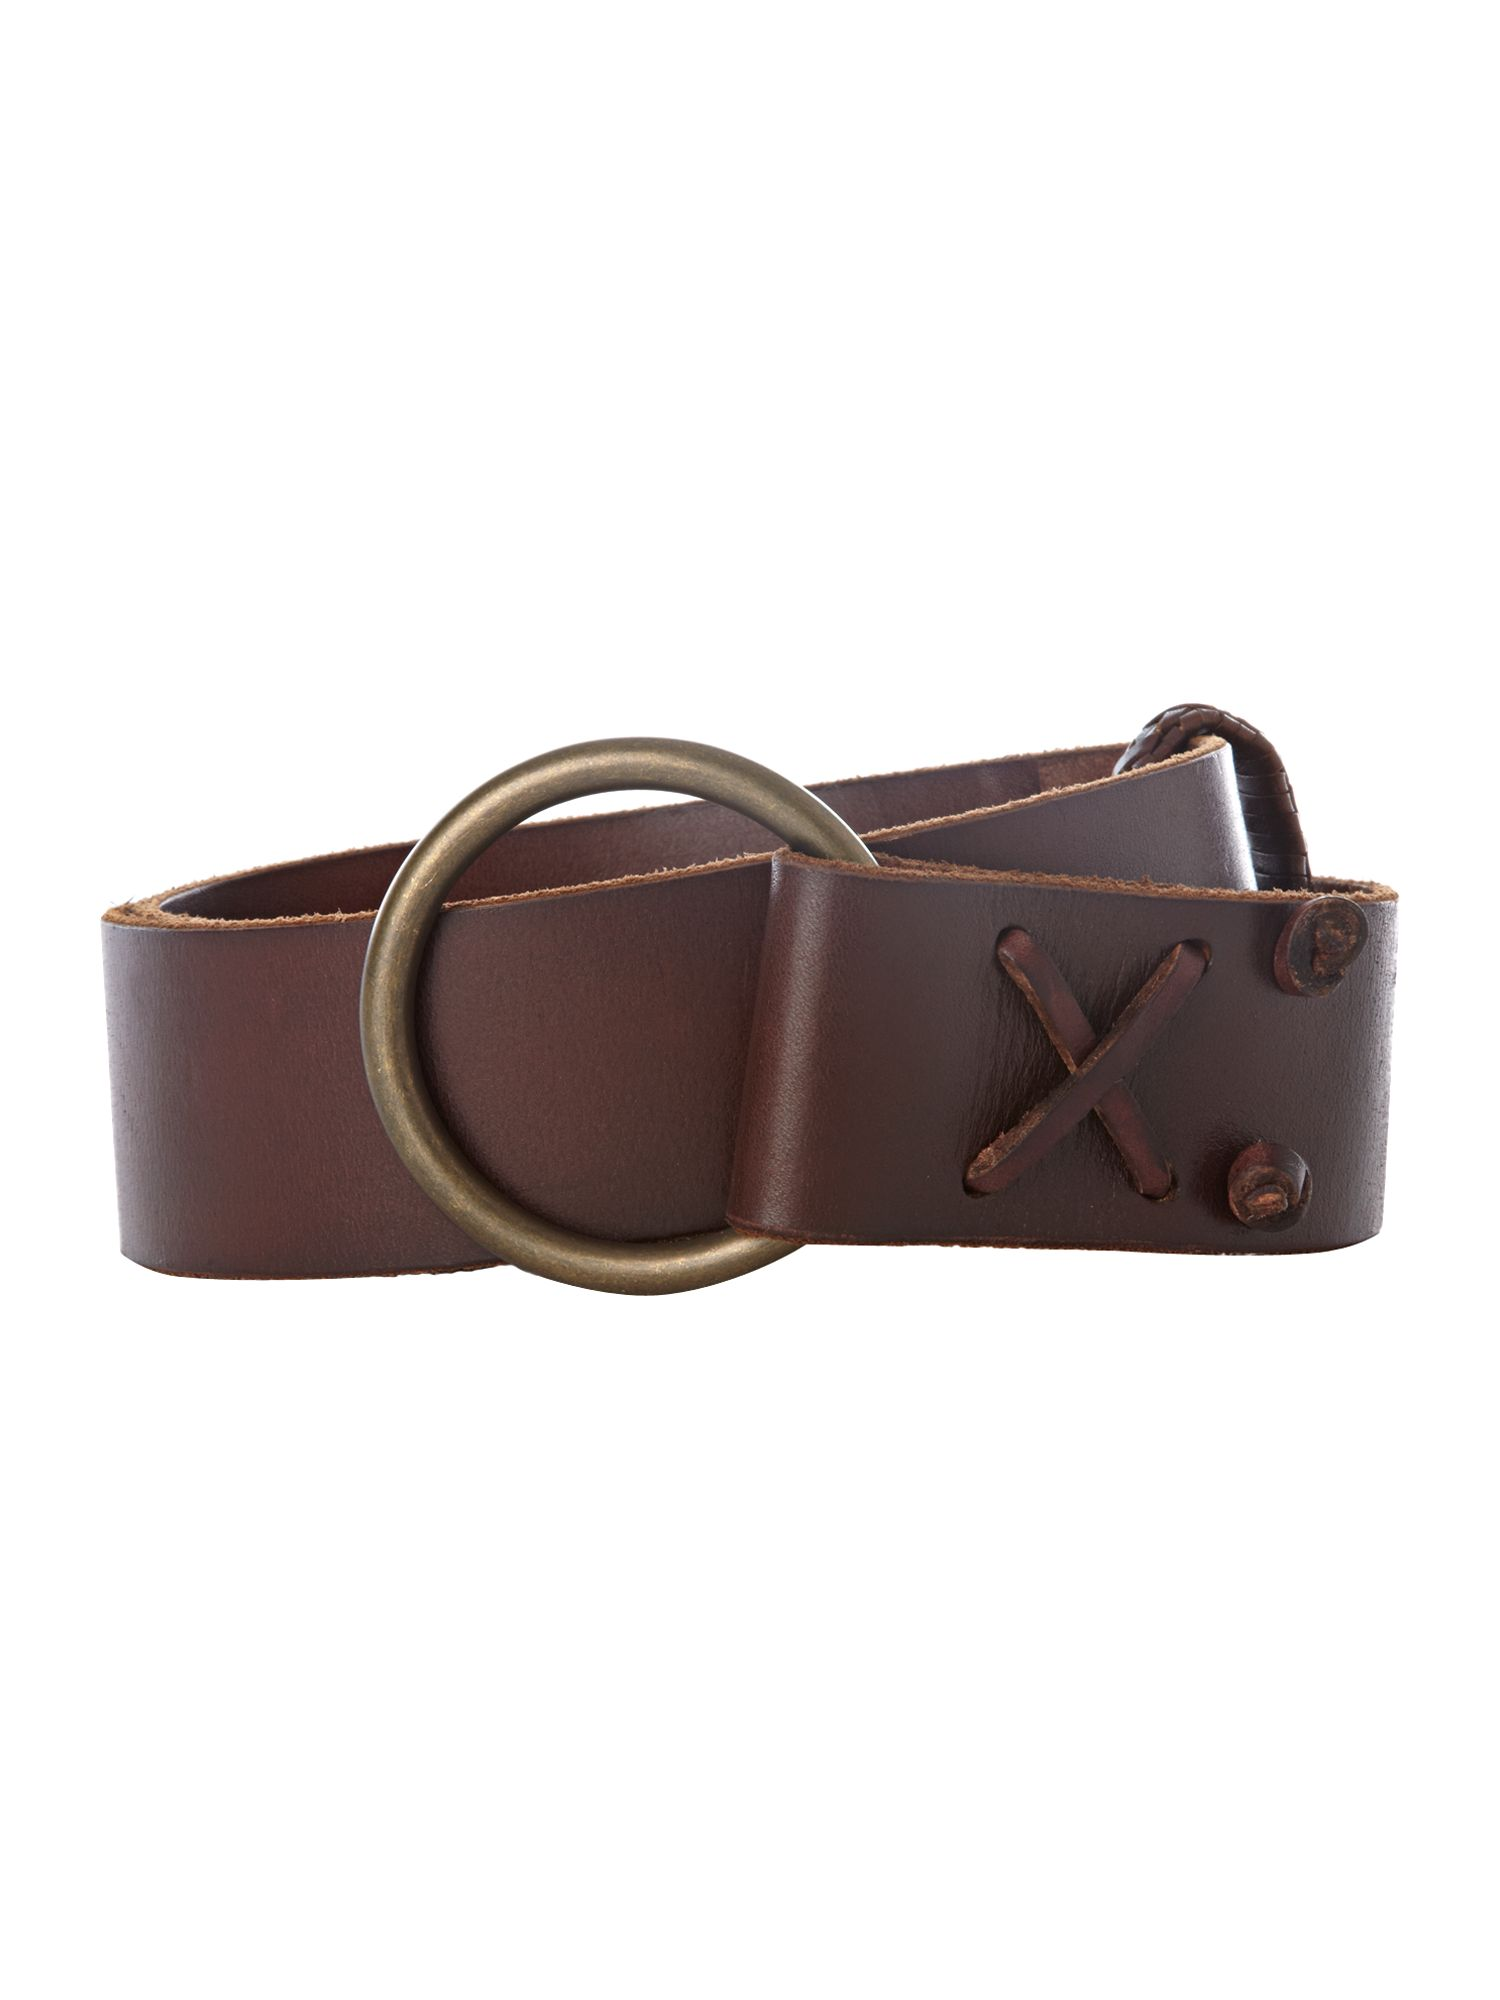 Leather belt with 0-ring